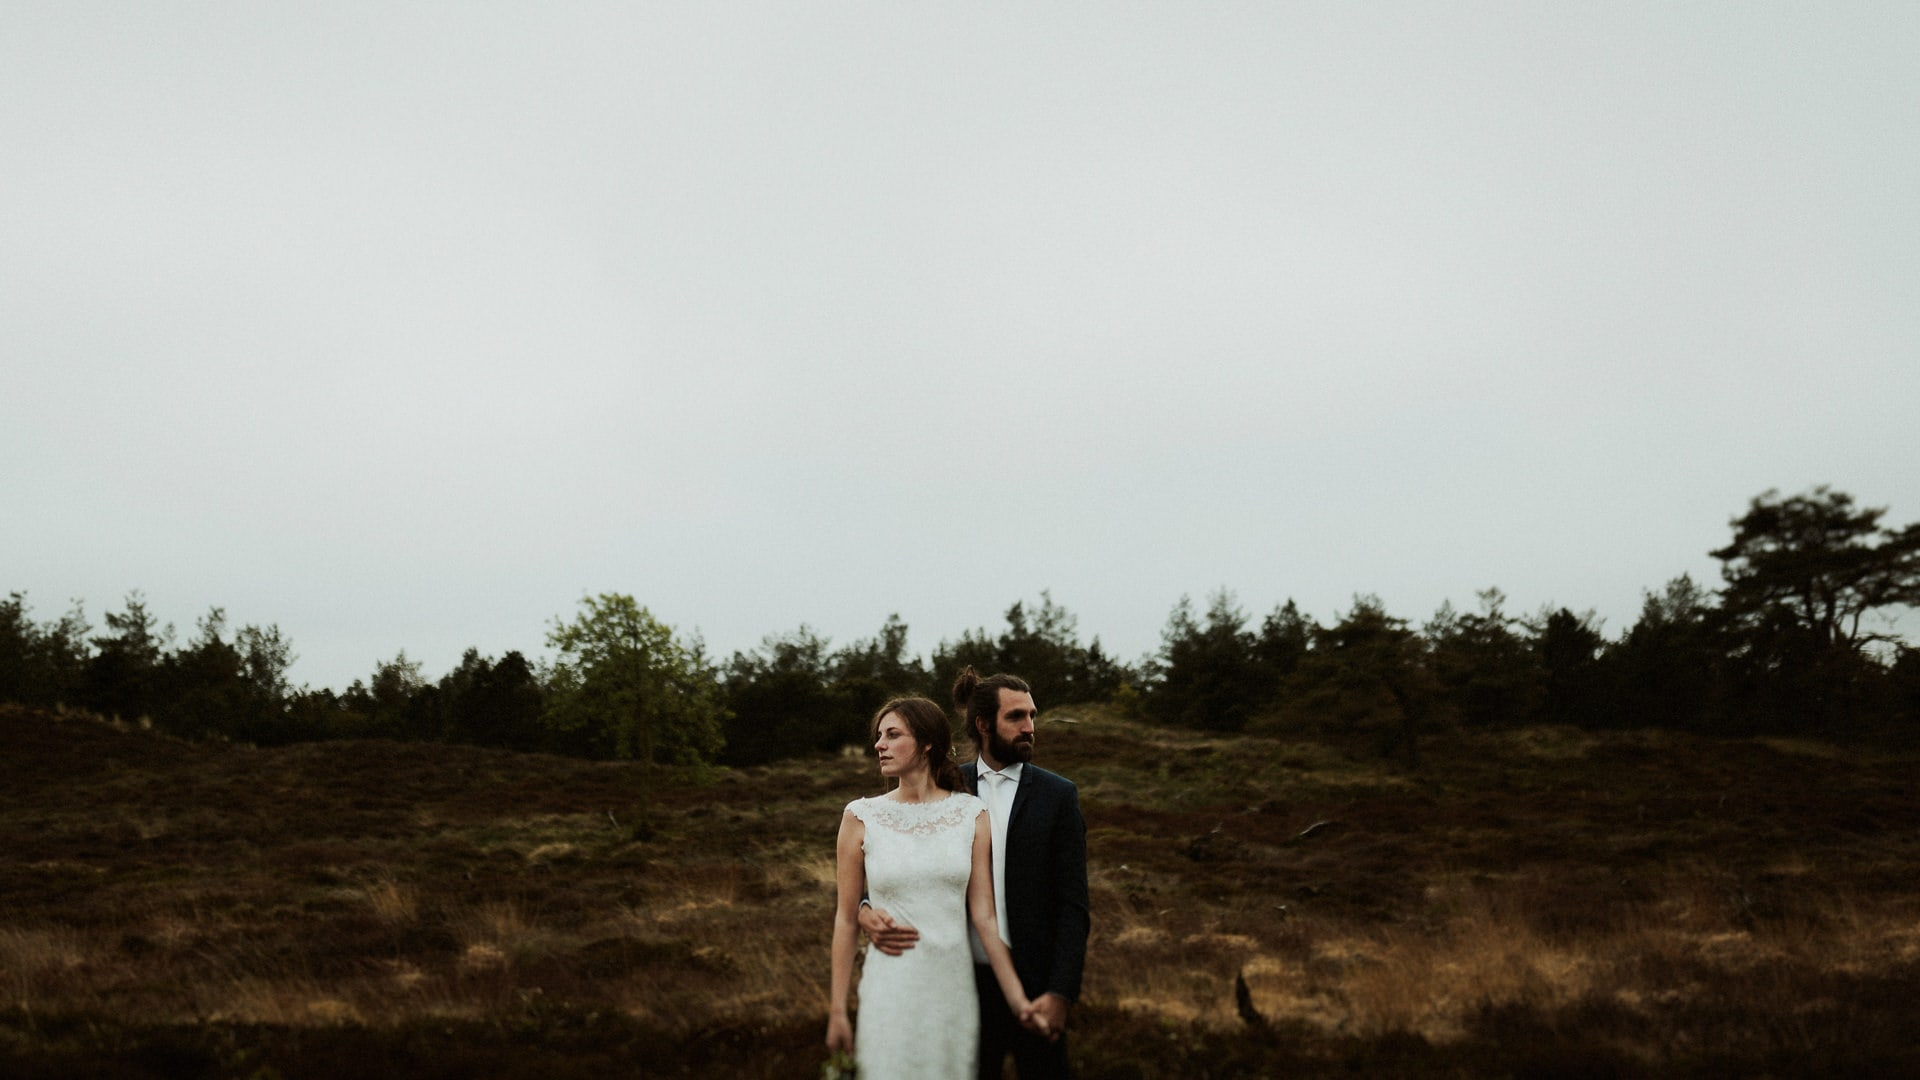 Denmark Wedding Photographer Klitmoeller Surf Elopement 0014